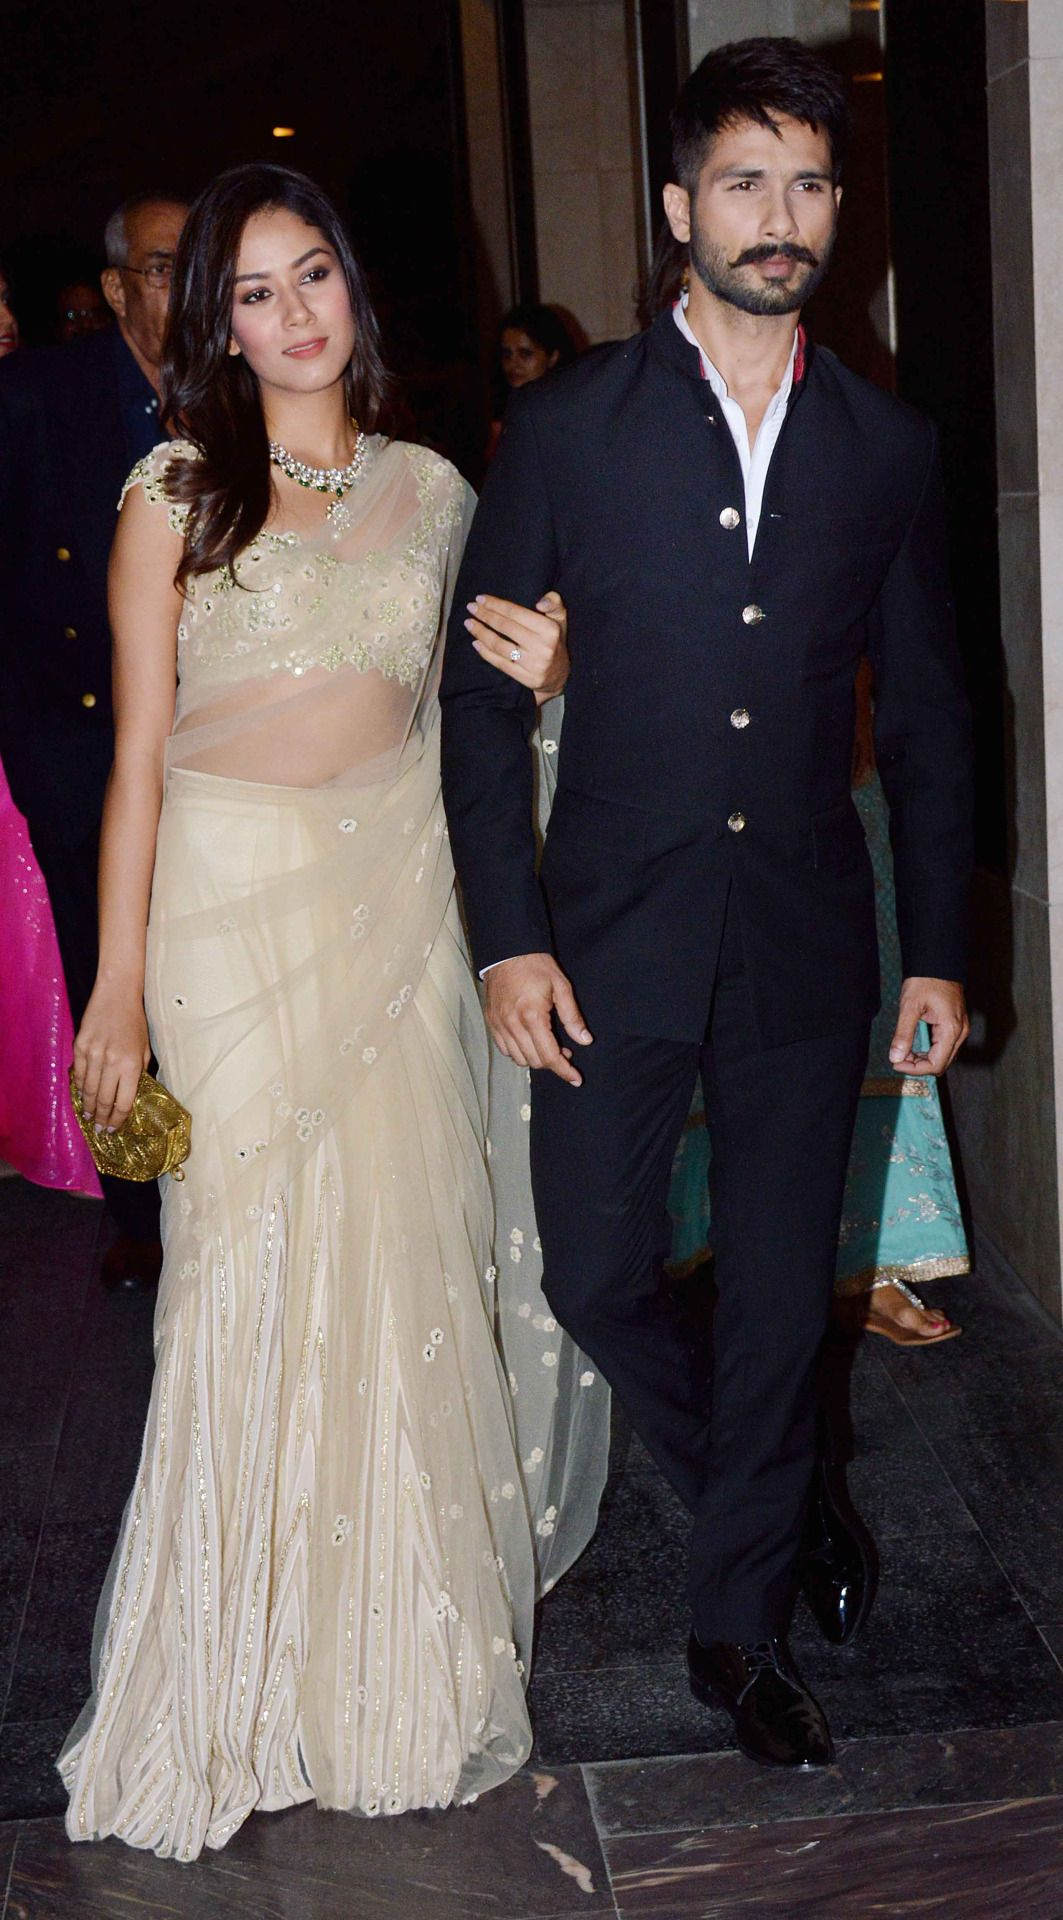 Shahid and Mira look so so cute together! Wedding